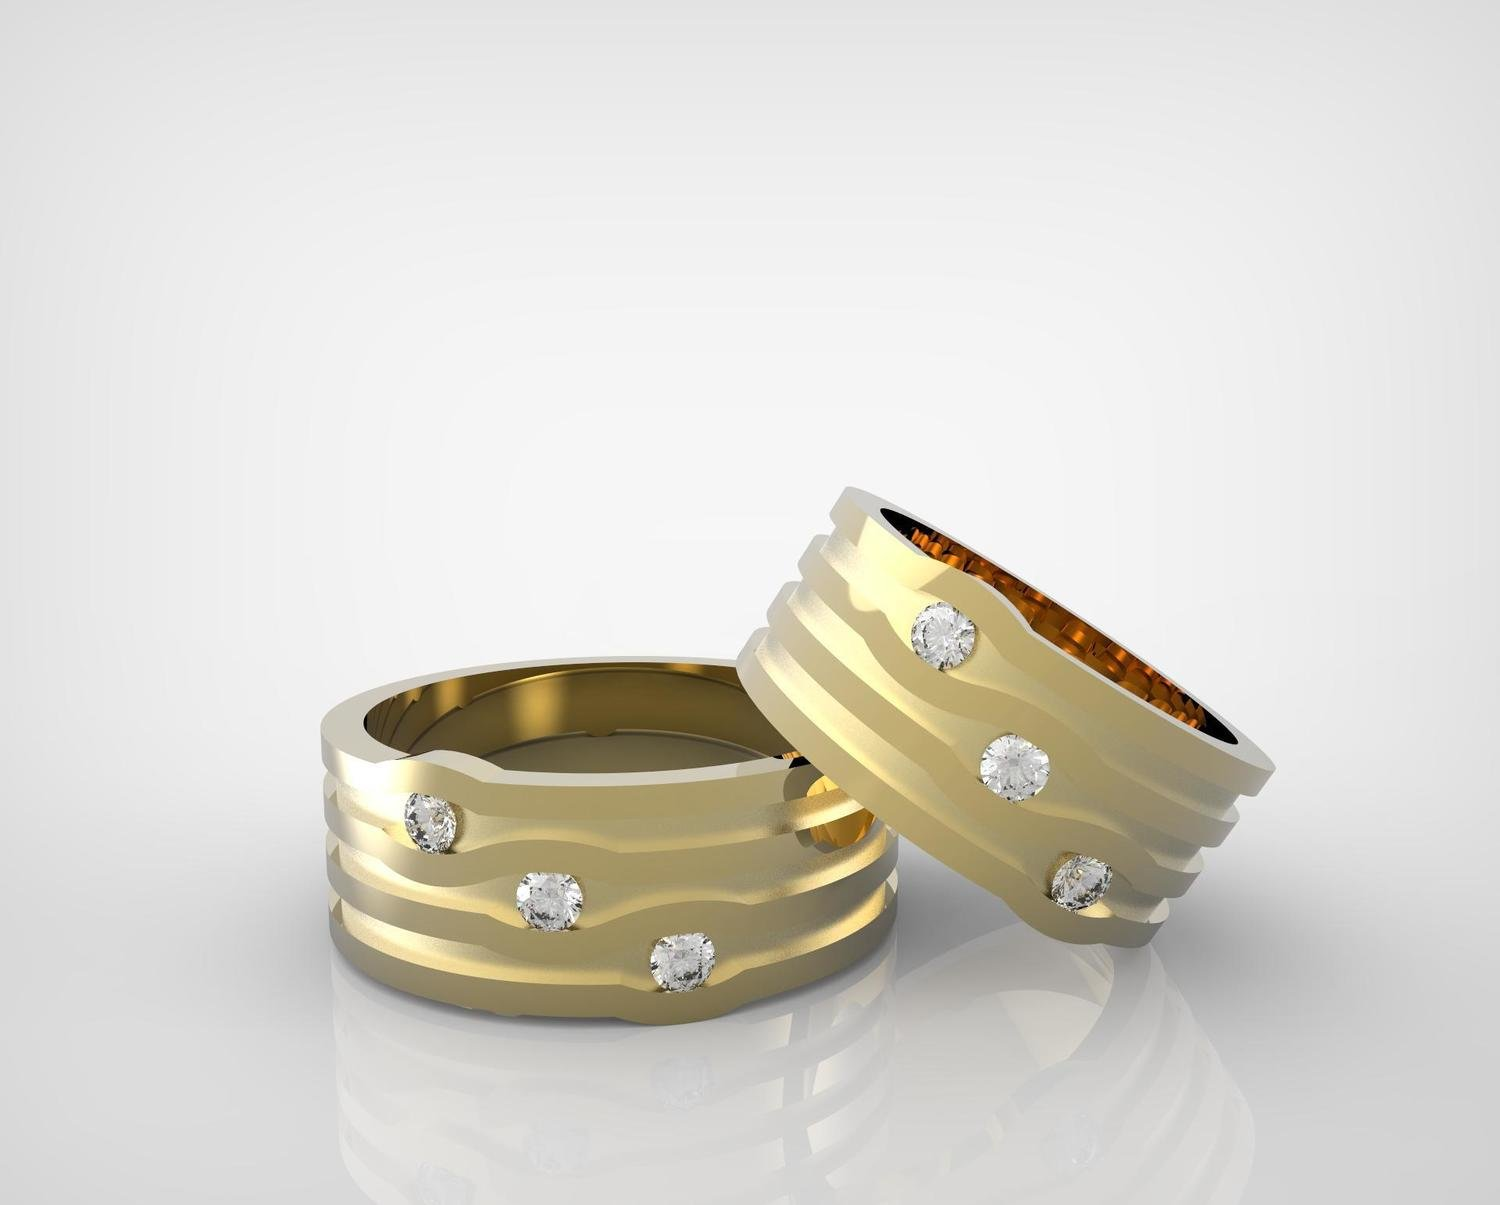 CAD Model of Custom Diamond Wedding Ring